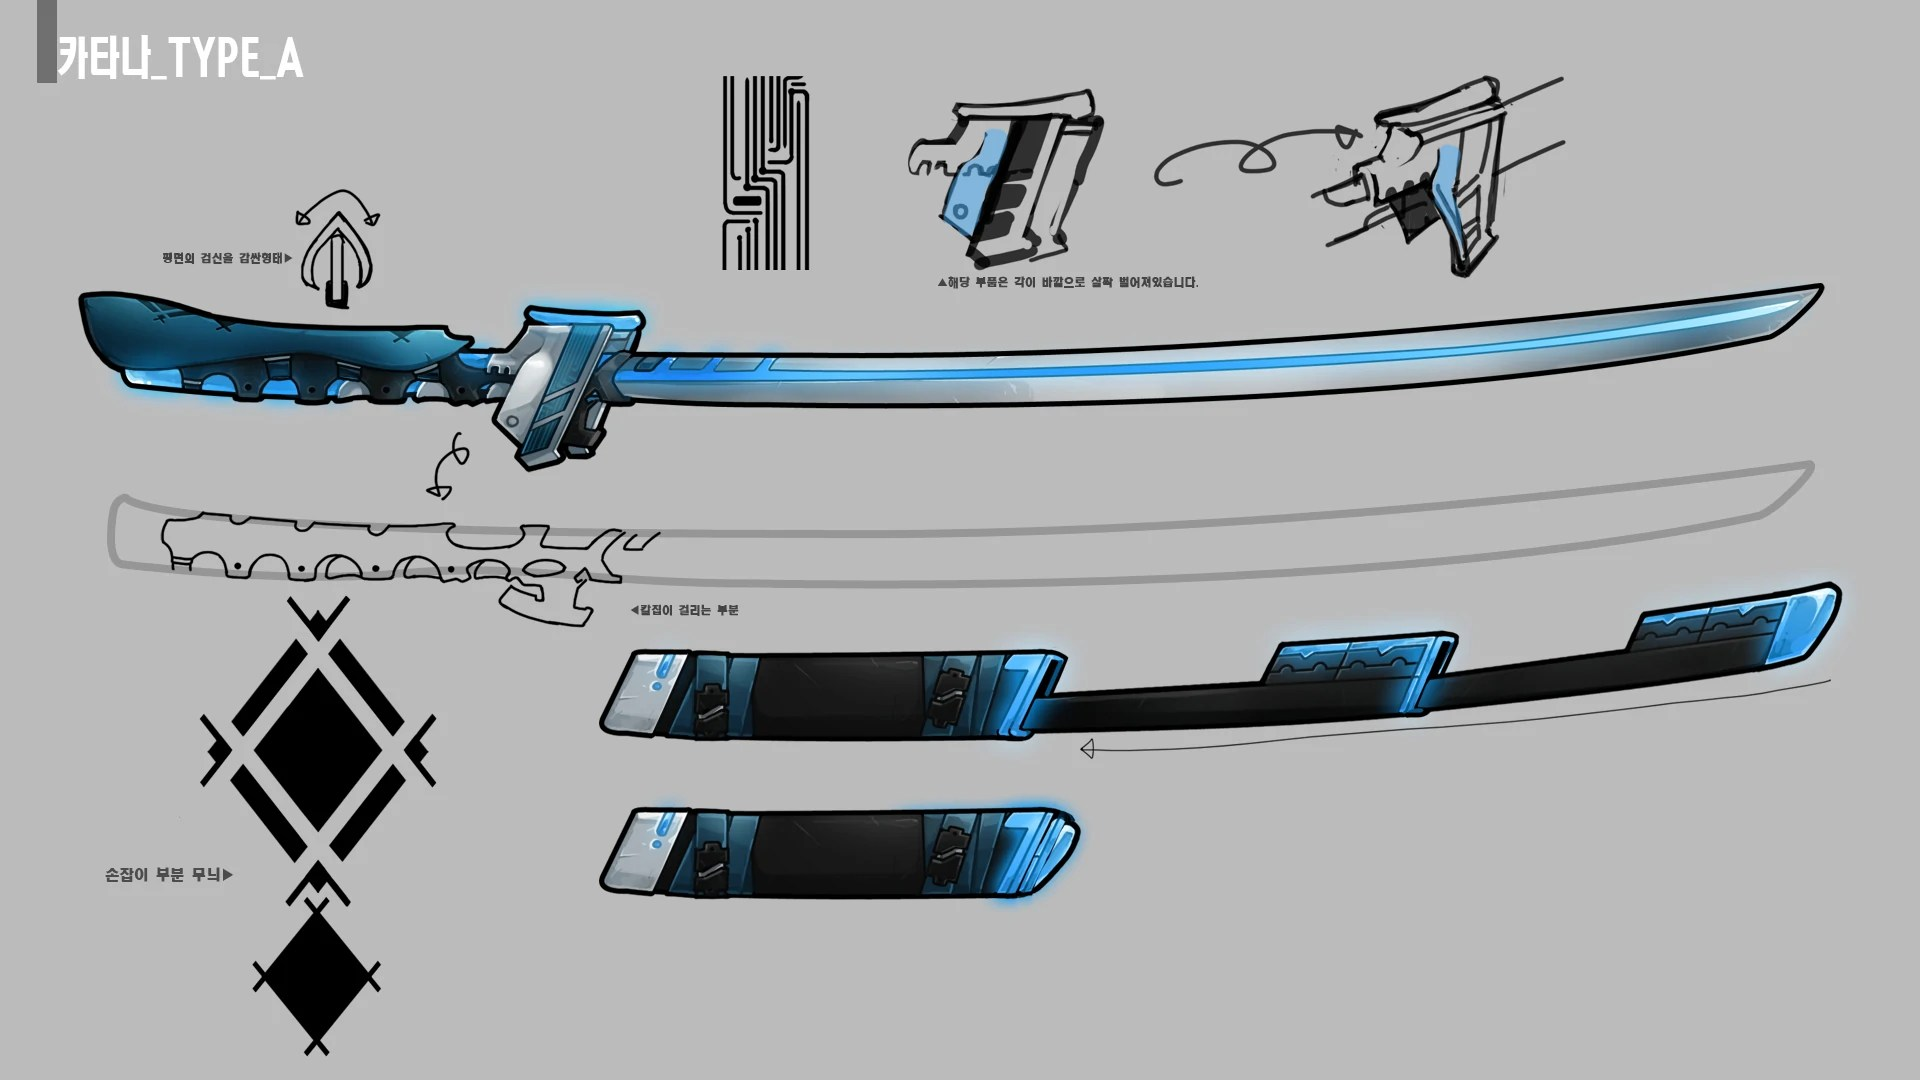 20+ Katana Concept Art Pictures and Ideas on Meta Networks